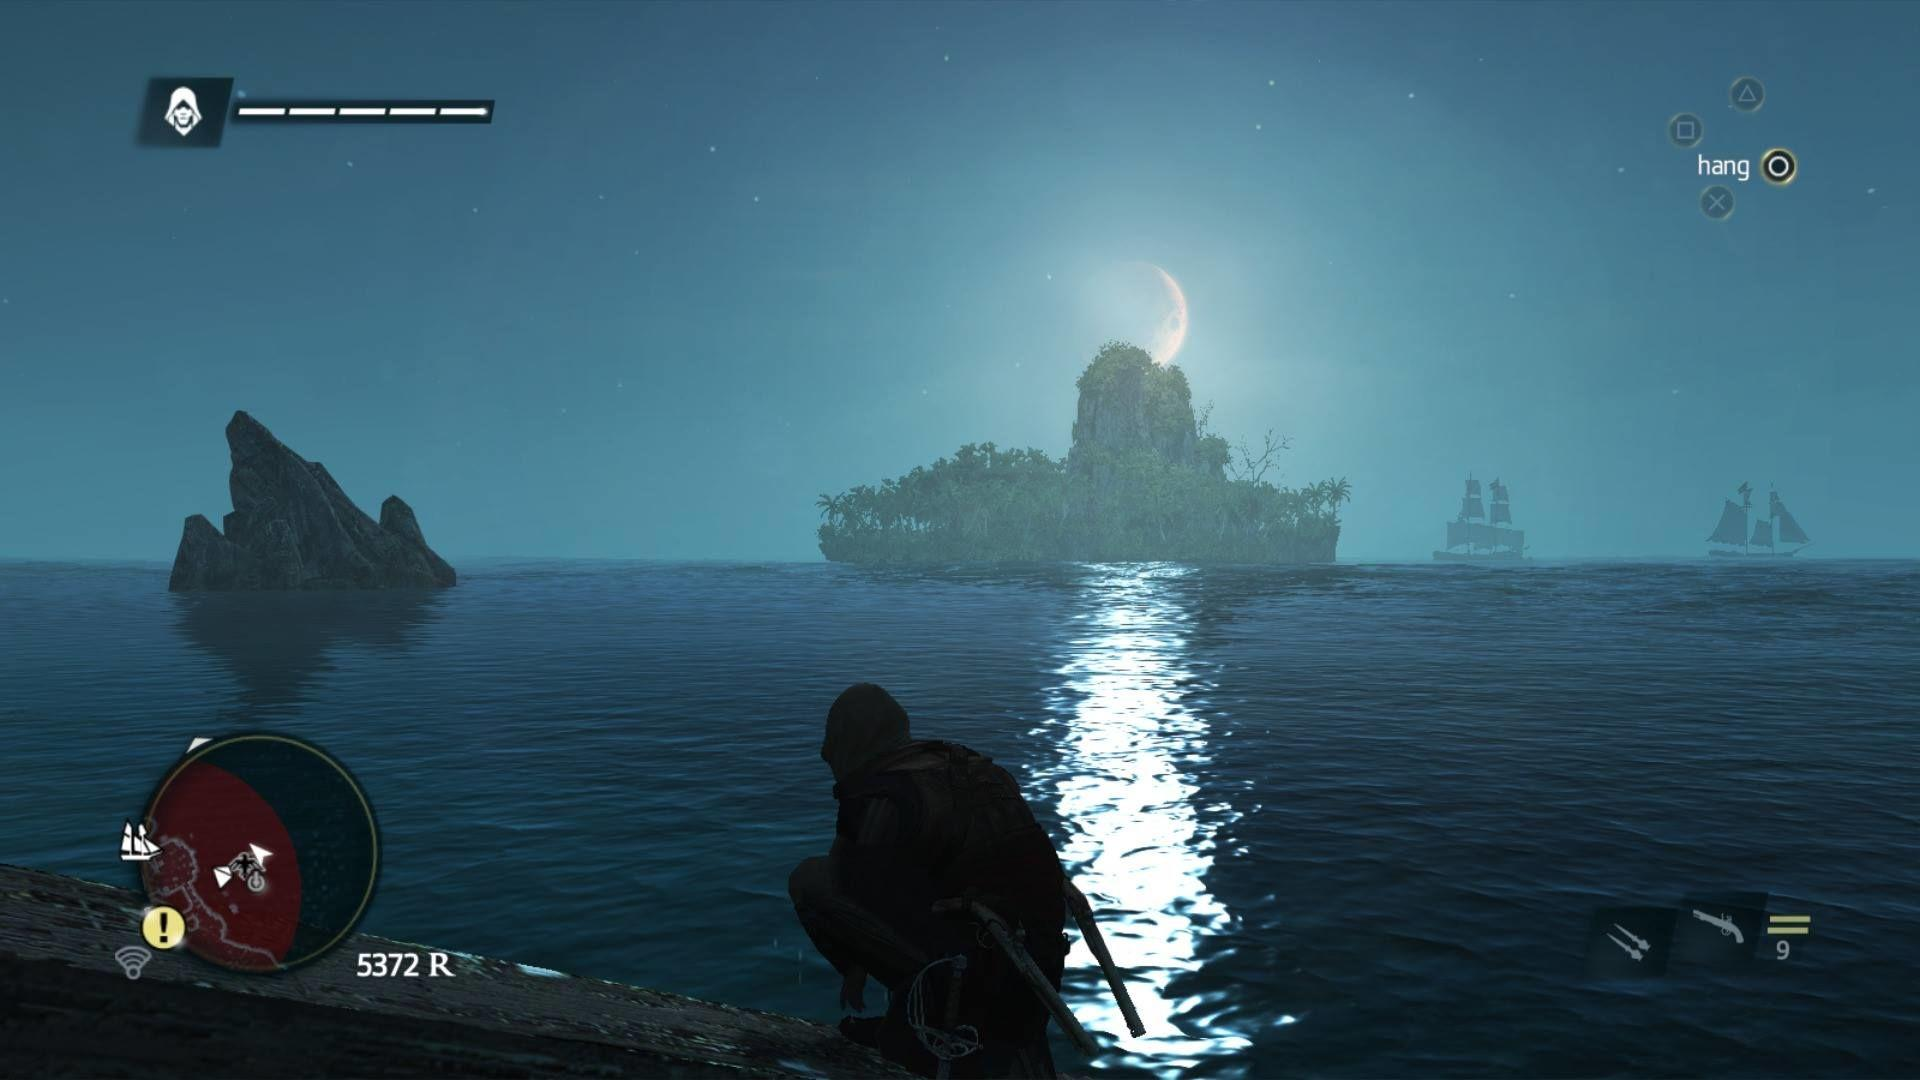 Via http://www.mobygames.com/images/shots/l/682272-assassin-s-creed-iv-black-flag-playstation-4-screenshot-day.jpg